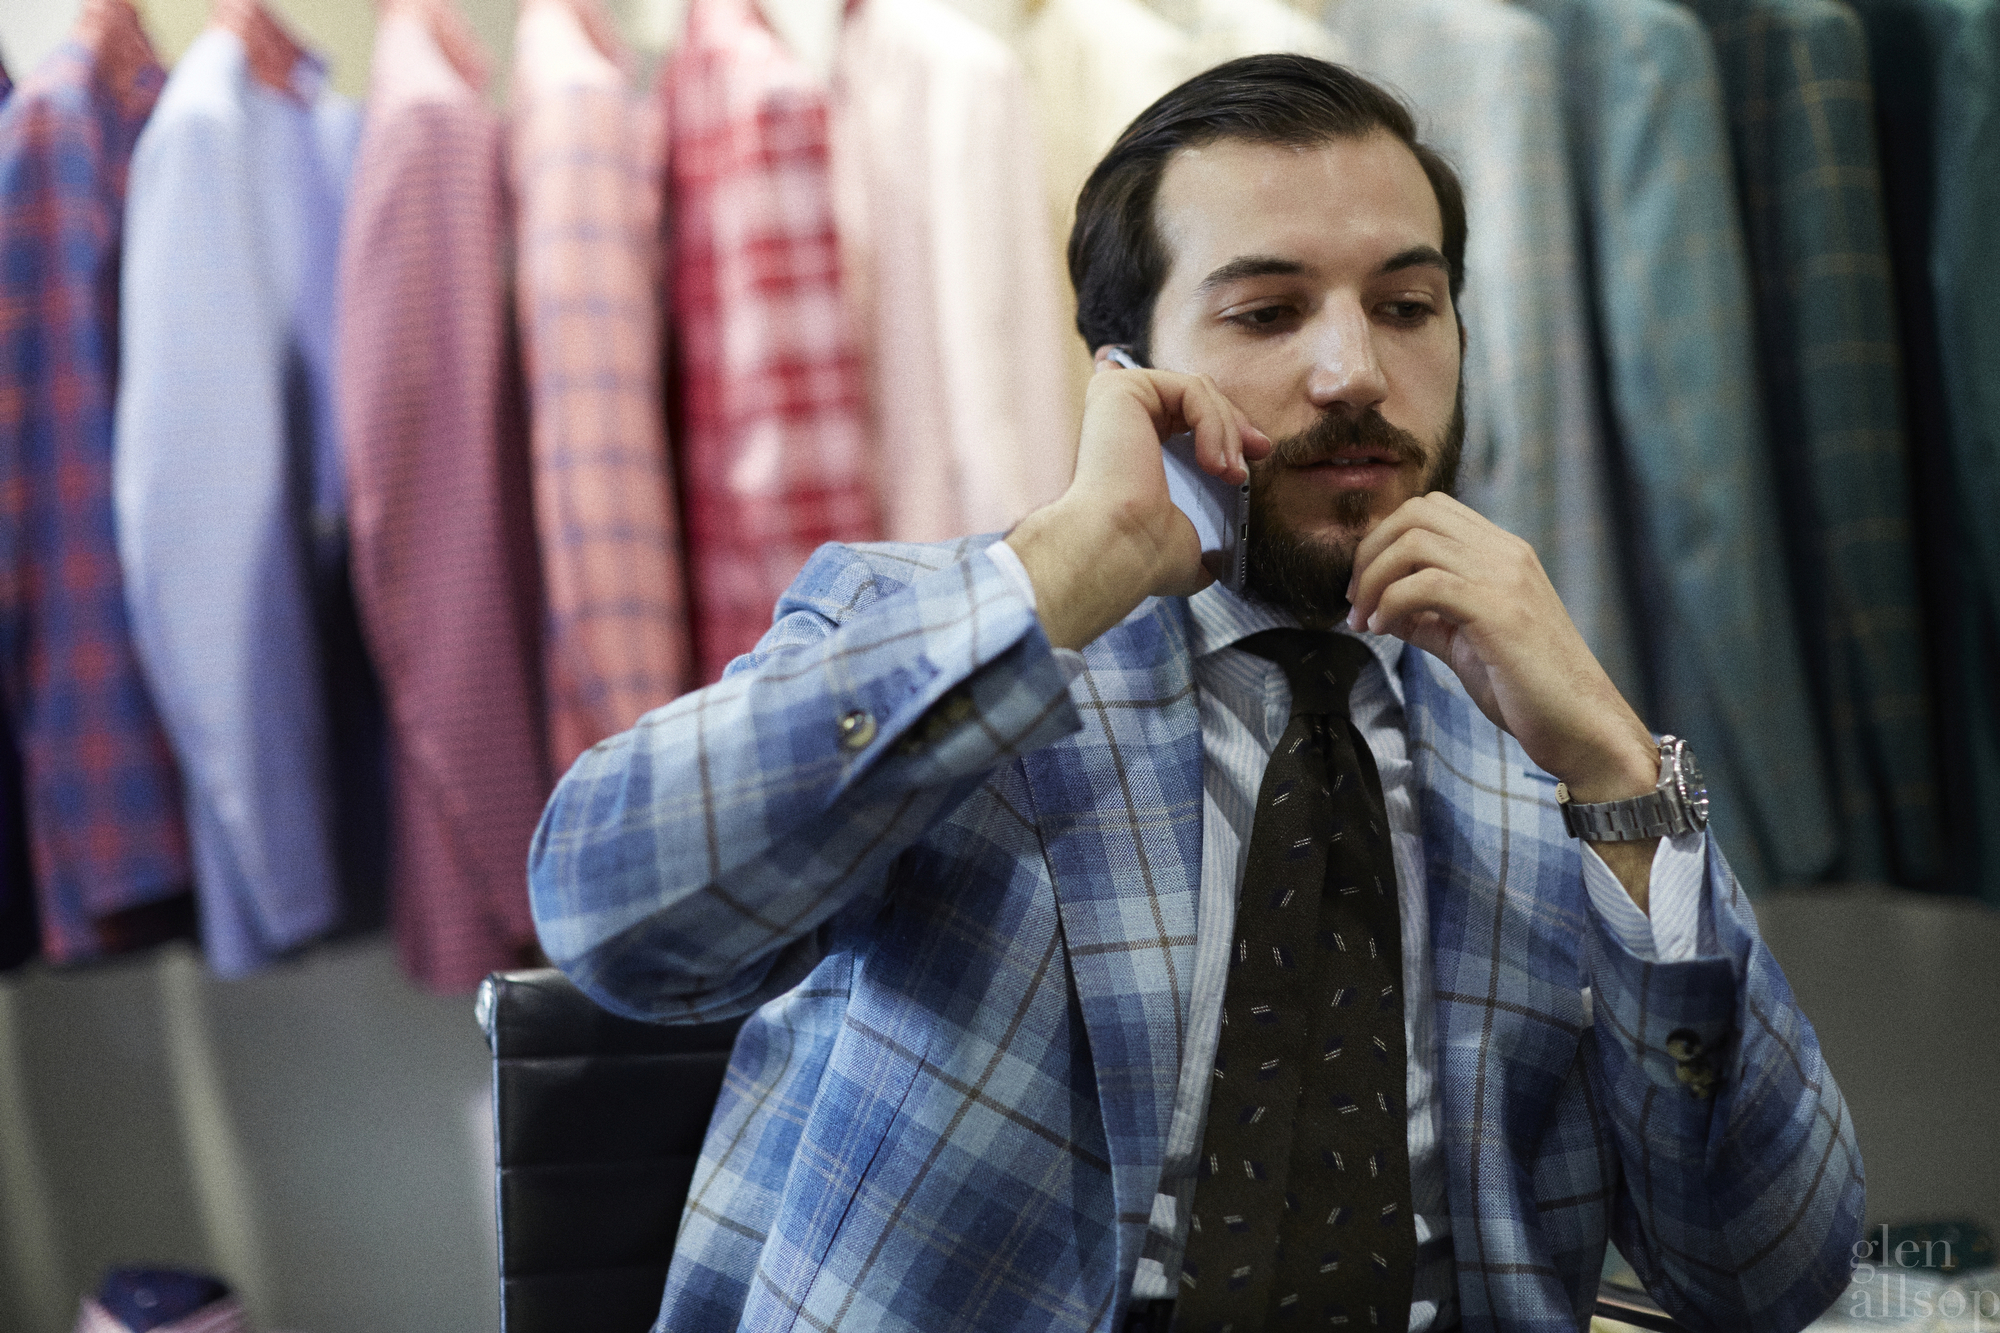 alexander restivo-isaia-colorful suits